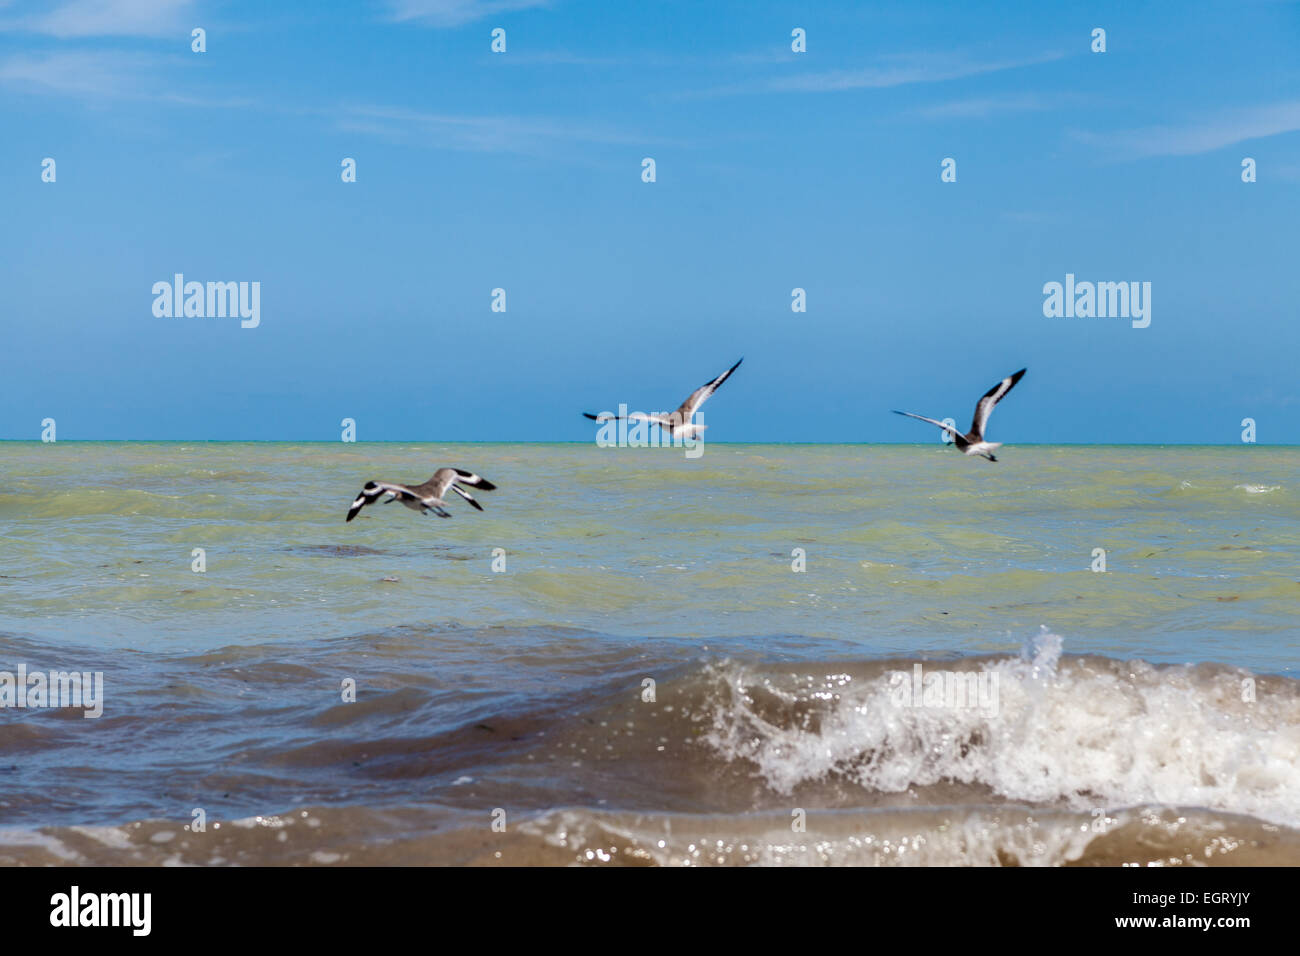 going fishing, birds fishing and playing in the waves of the ocean Stock Photo